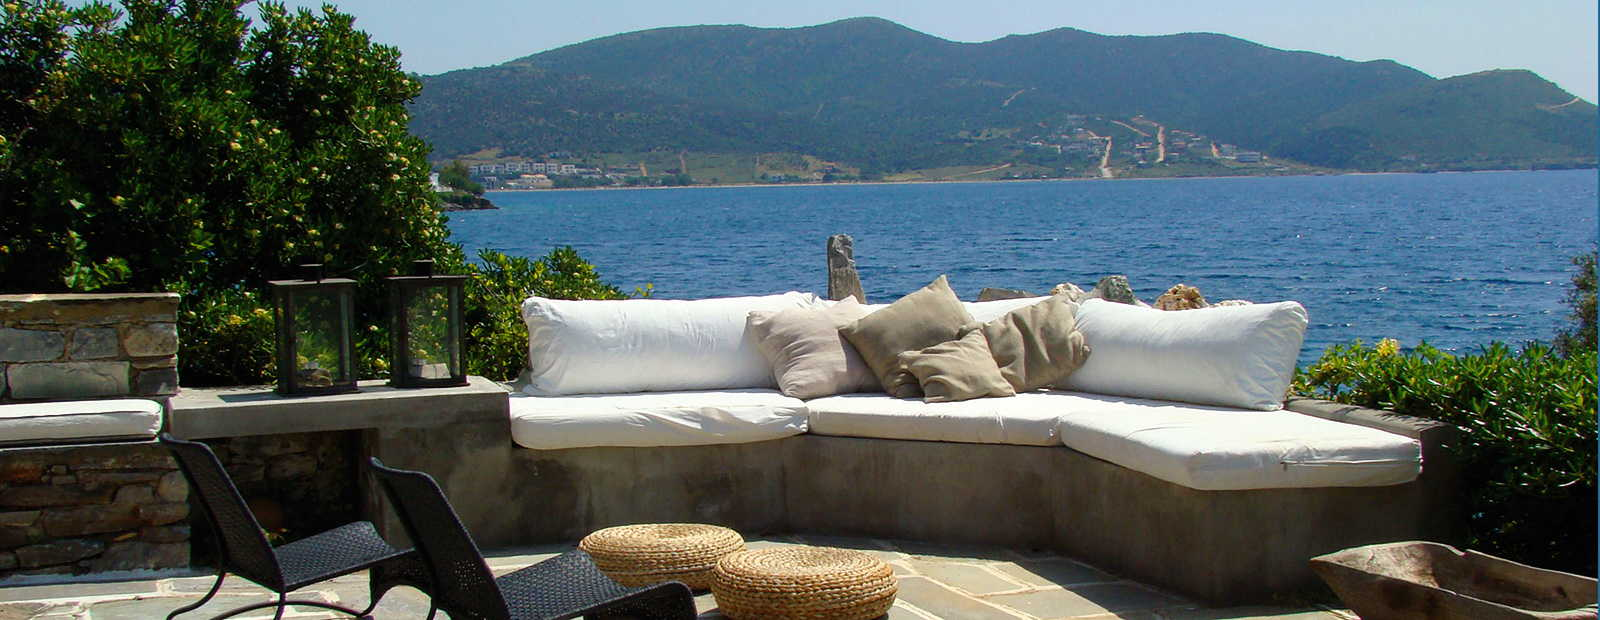 Luxurious holiday homes in Evia